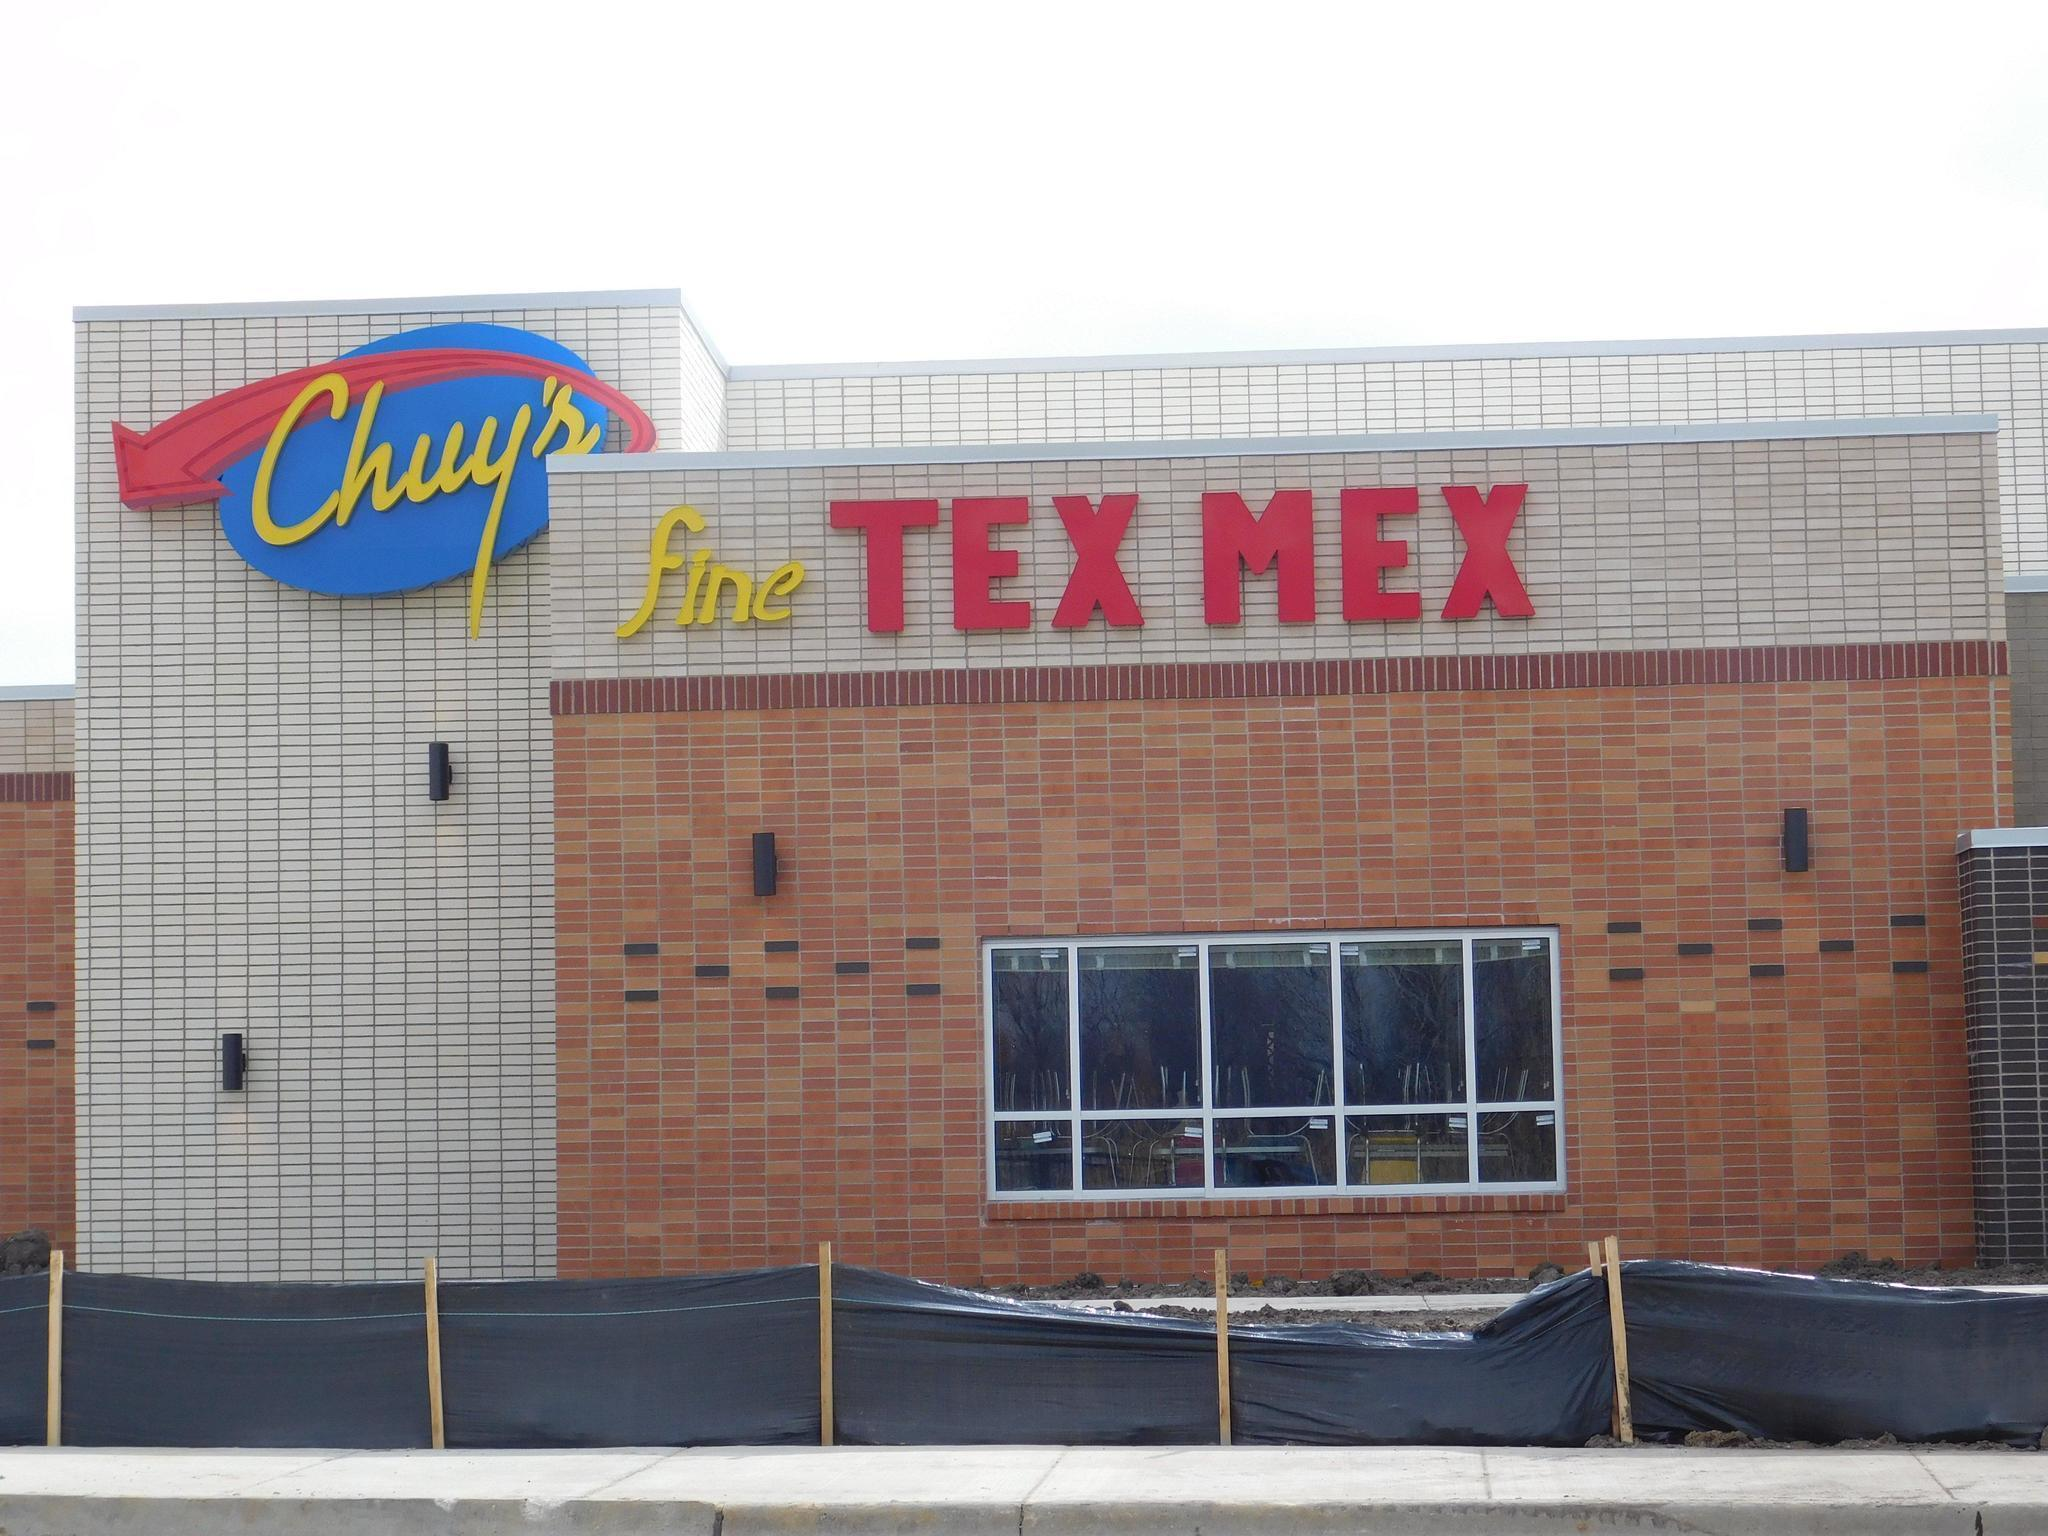 Comings U0026 Goings: Chuyu0027s Tex Mex To Open In Orland Park   Daily Southtown